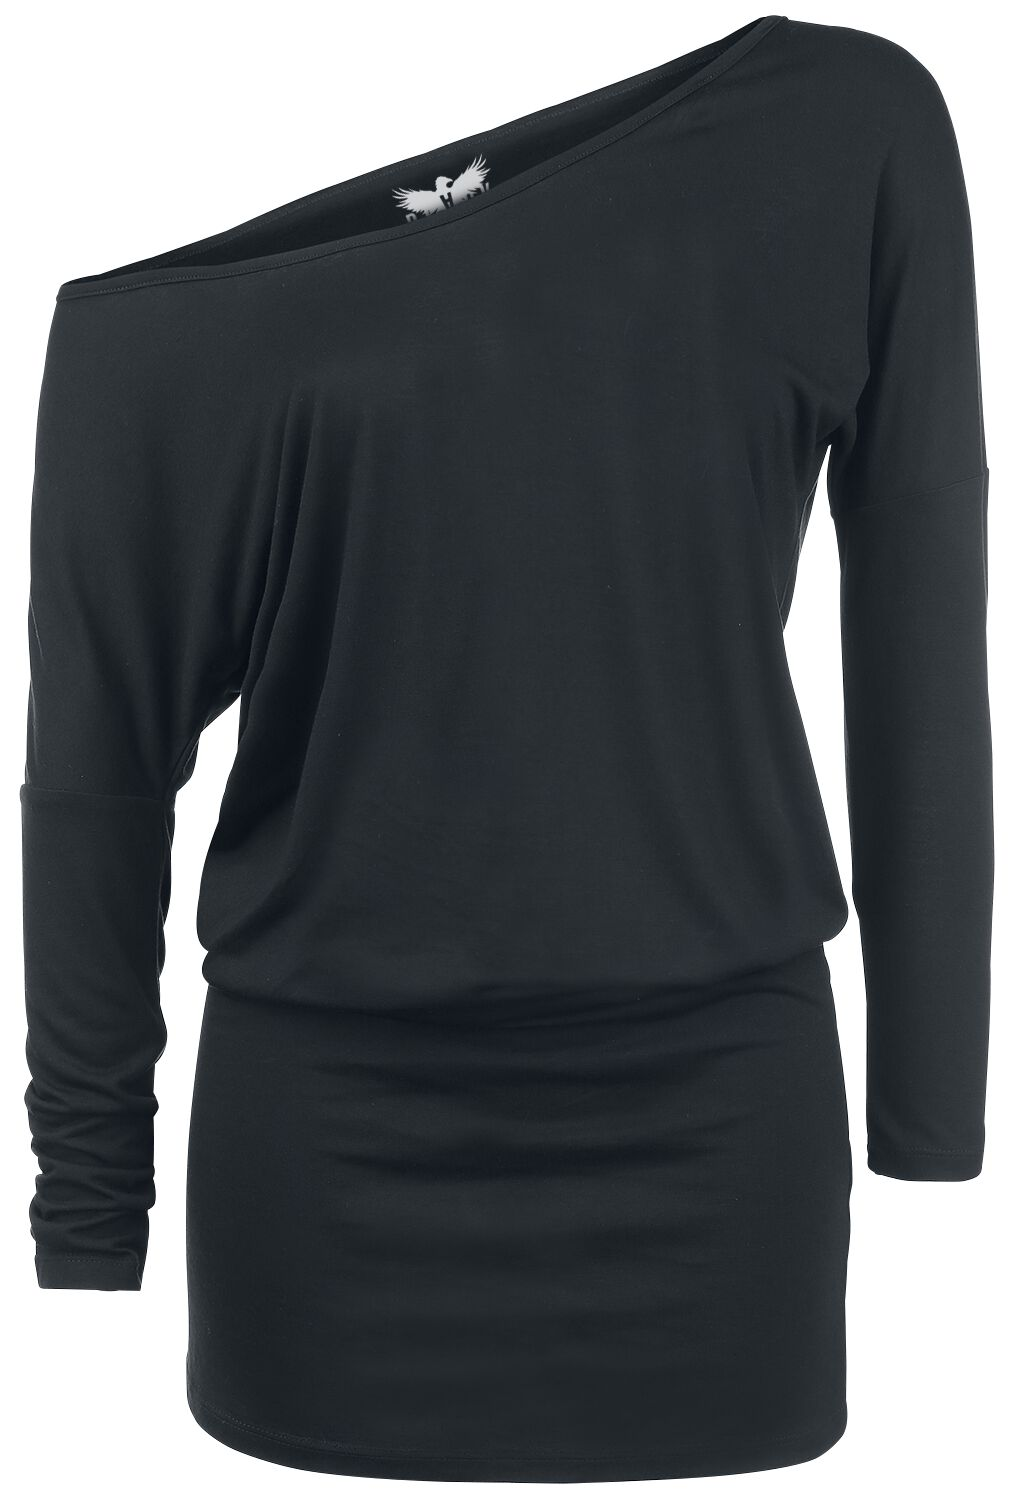 Black Premium by EMP Hold Loosely Short dress black